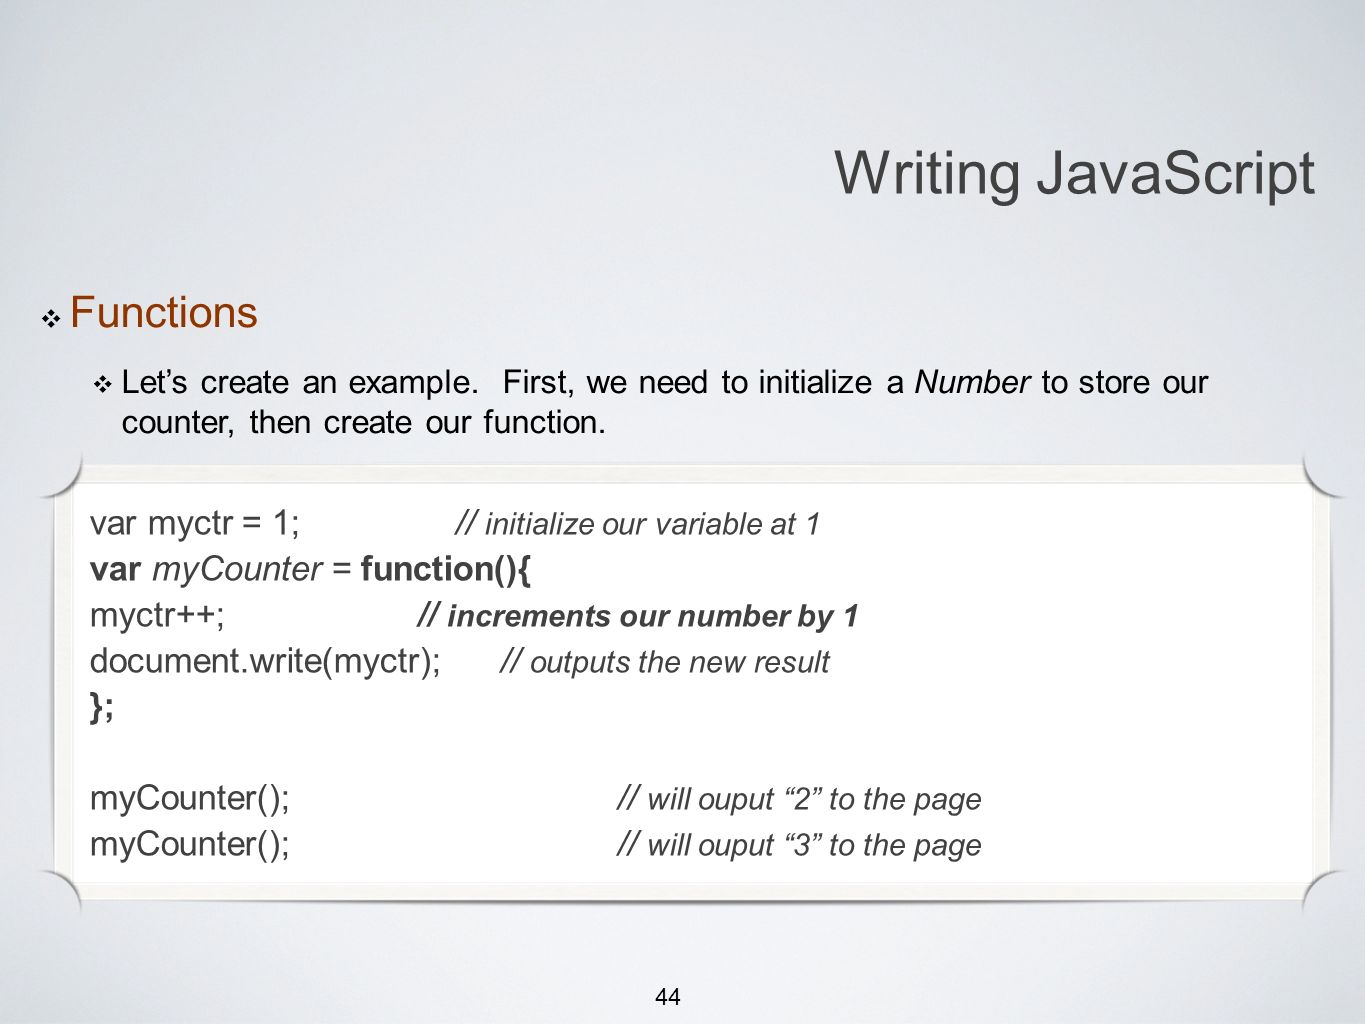 44 Michael Smotherman lectures 1:15pm FS2-207F Brandon Bombassei, Alejandro Campos labs 5pm-9pm 9pm-1am FS2-106E Writing JavaScript Functions Lets cre